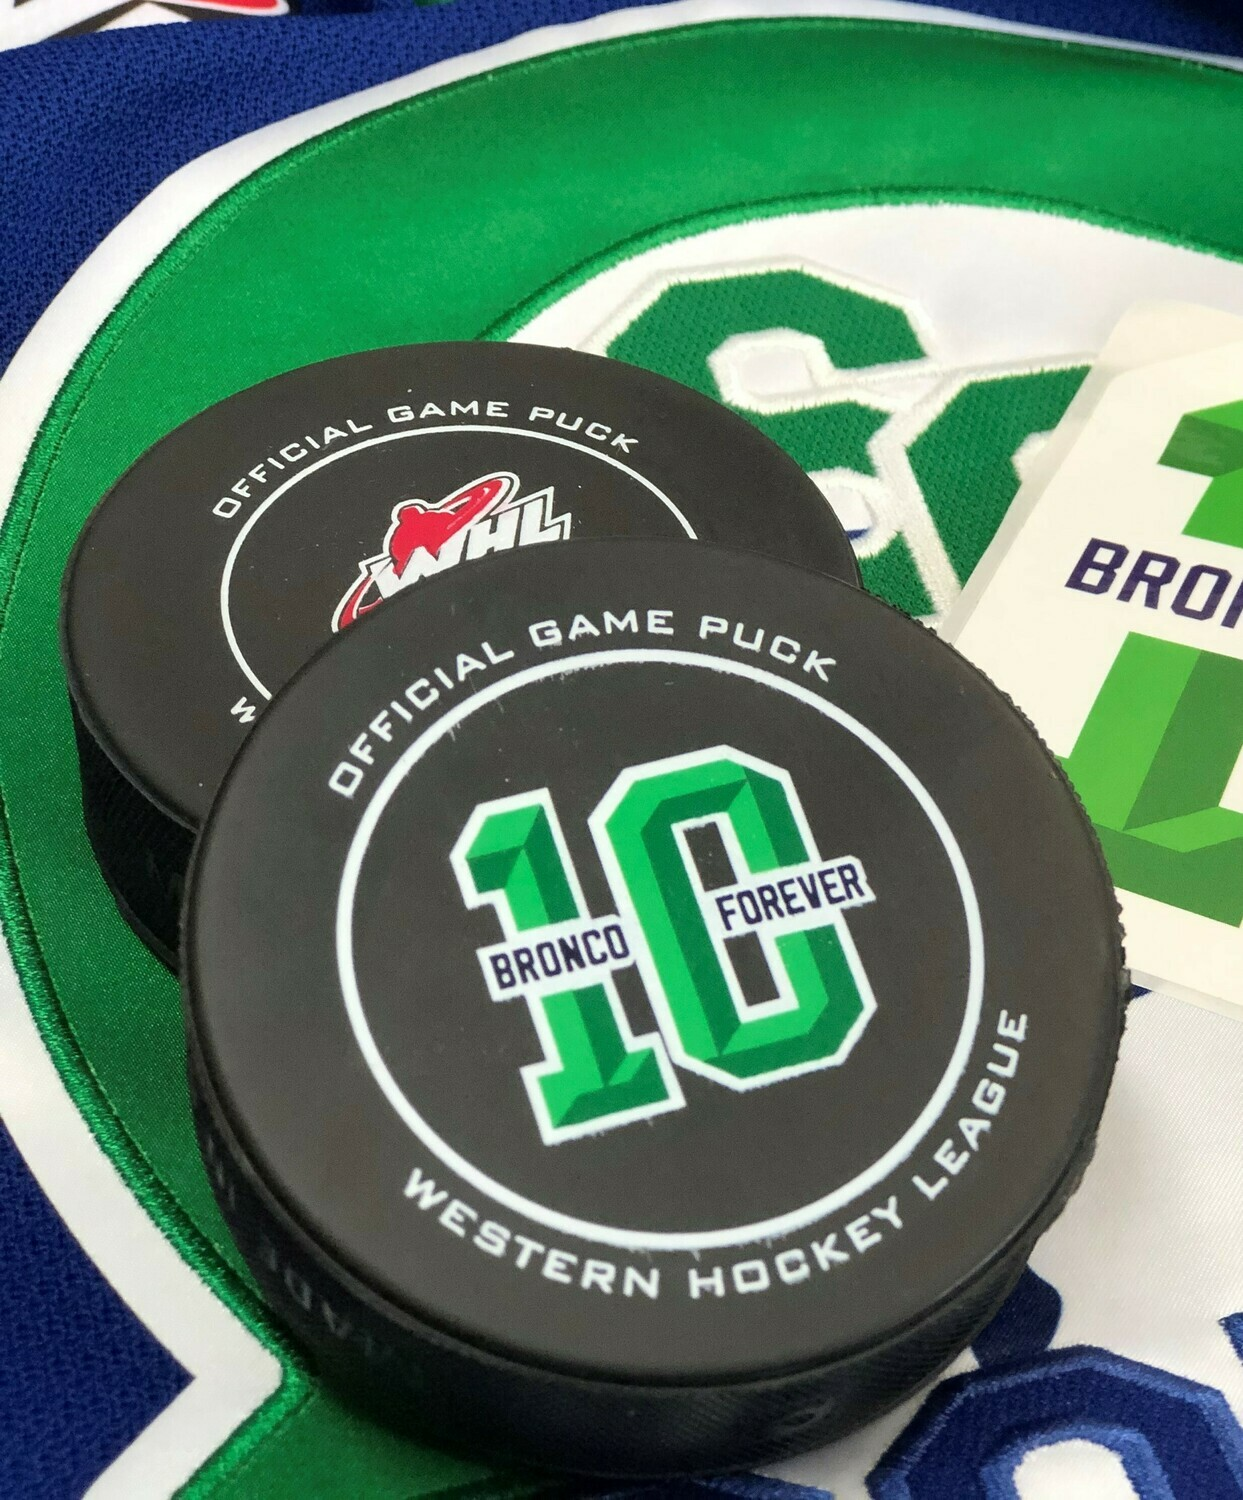 #10 Bronco Forever Colby Cave Tribute Puck